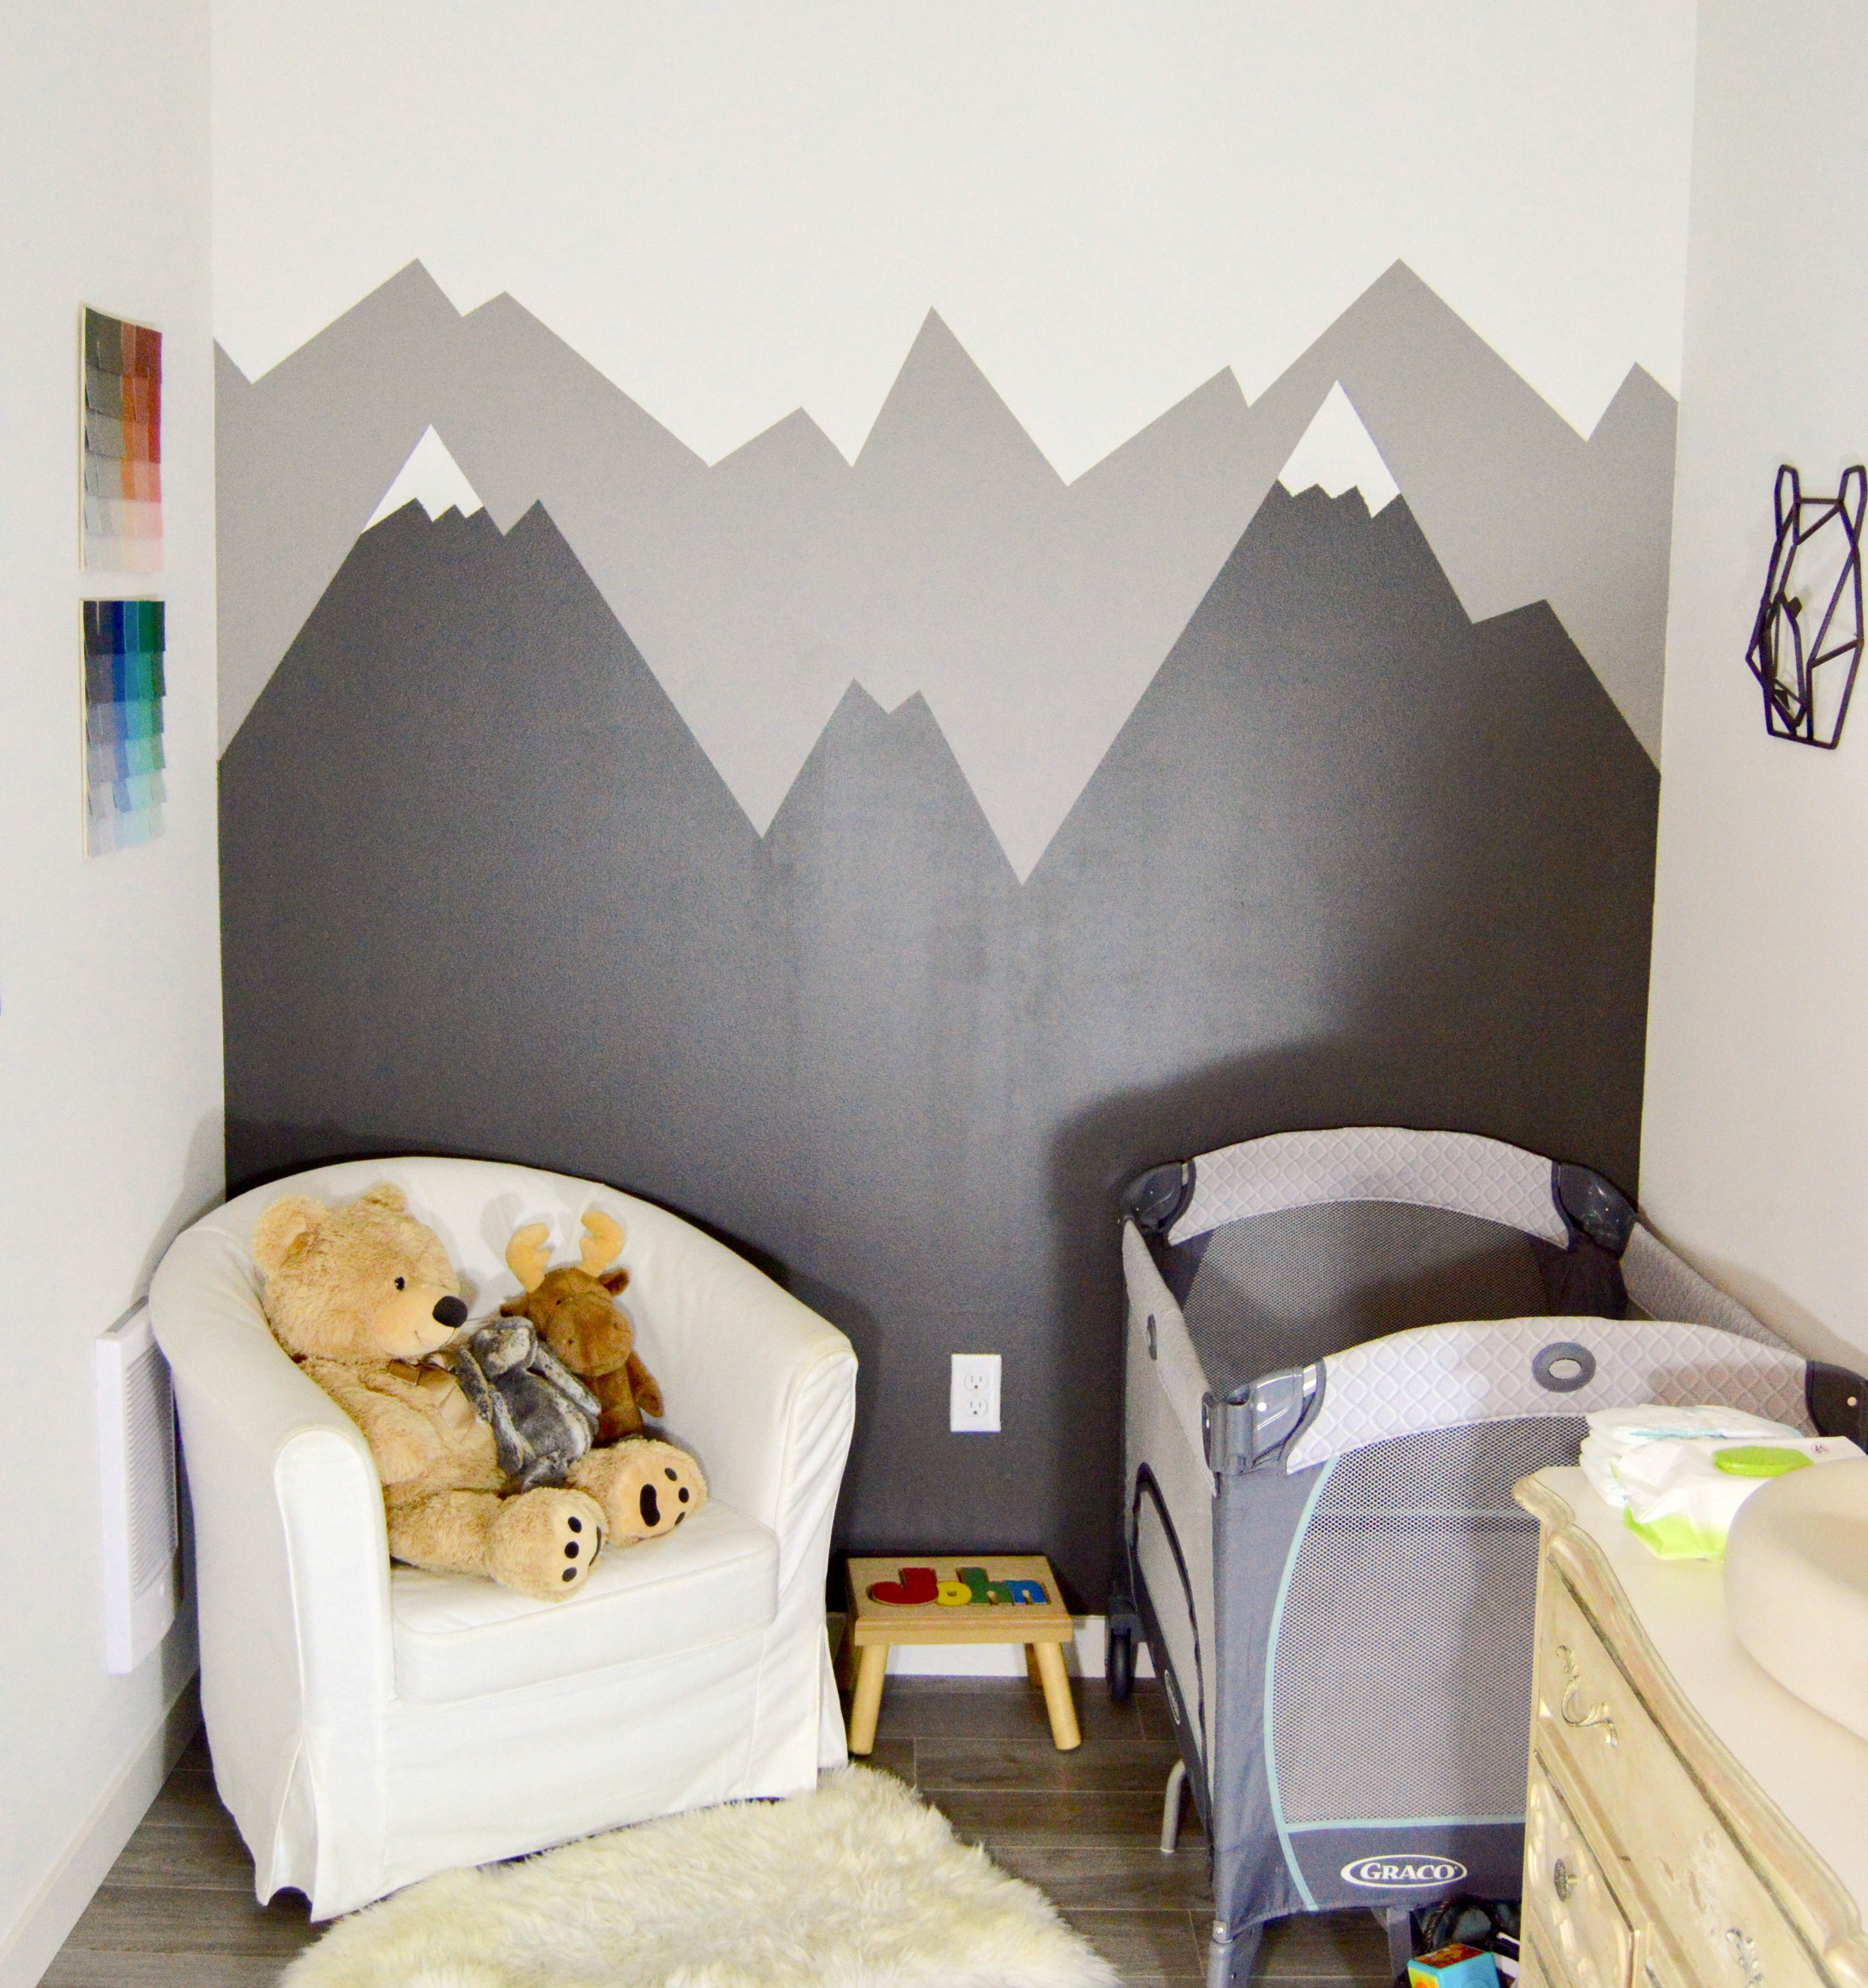 DIY Mountain Wall Mural - Small PNW (Pacific Northwest) outdoor theme nursery with mountains + animals for our baby boy. Mountain mural and paint chip art tutorial for woodland feel.